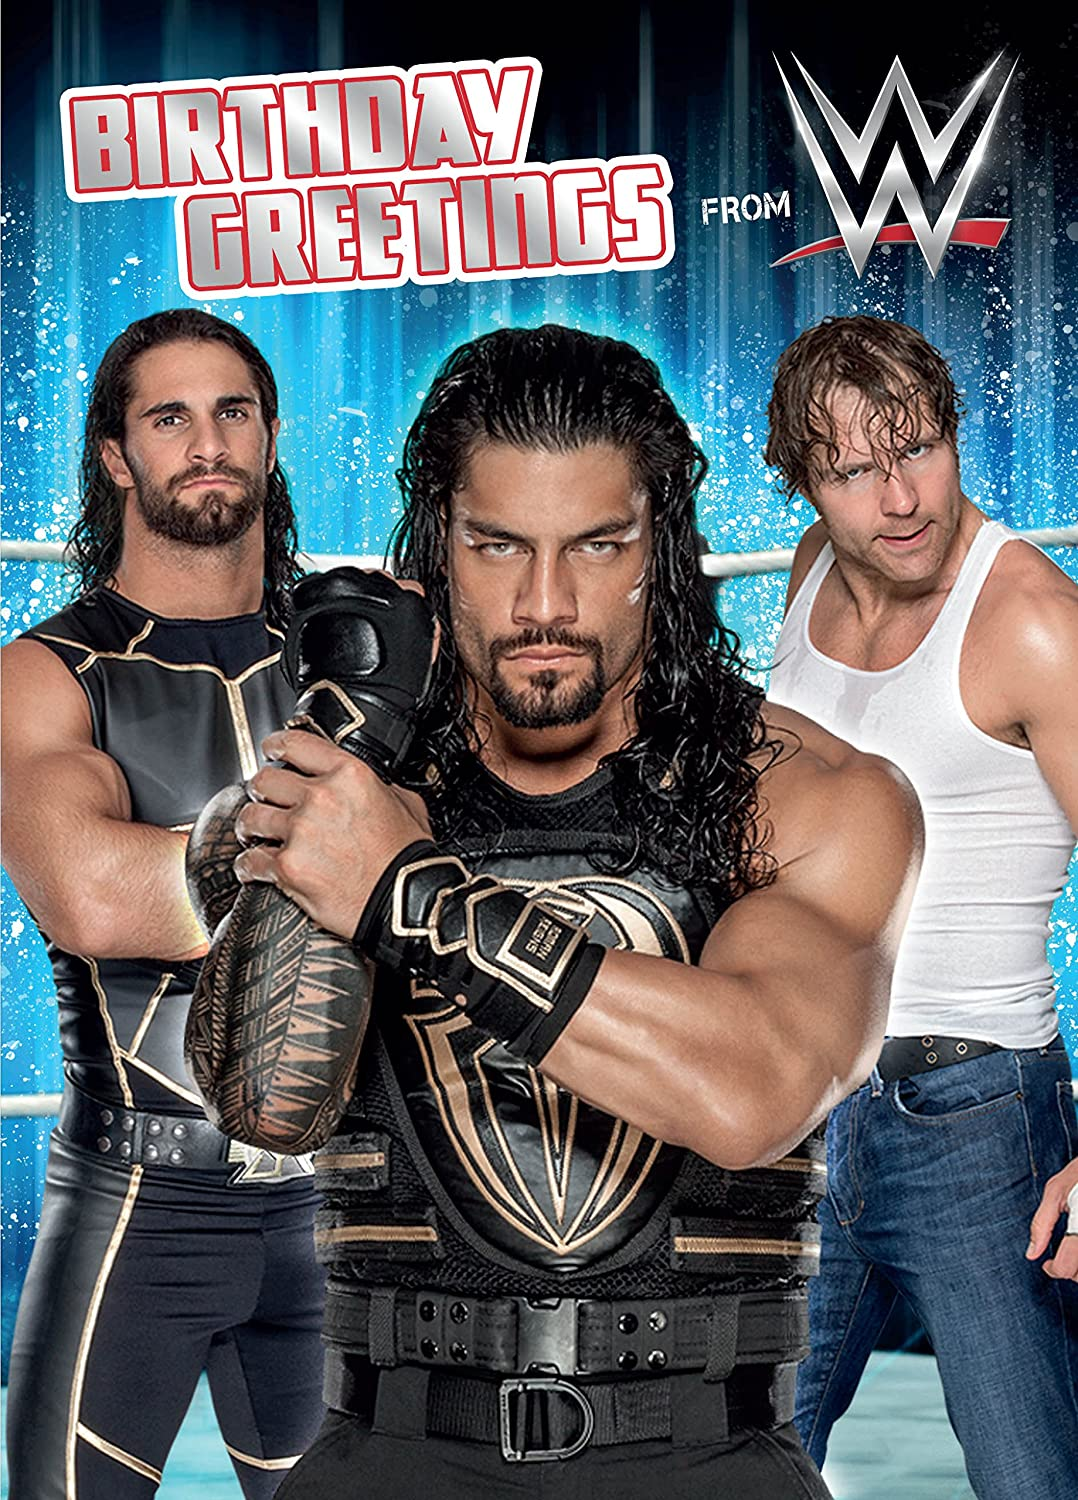 Wwe Sound Greeting Card Amazon Office Products